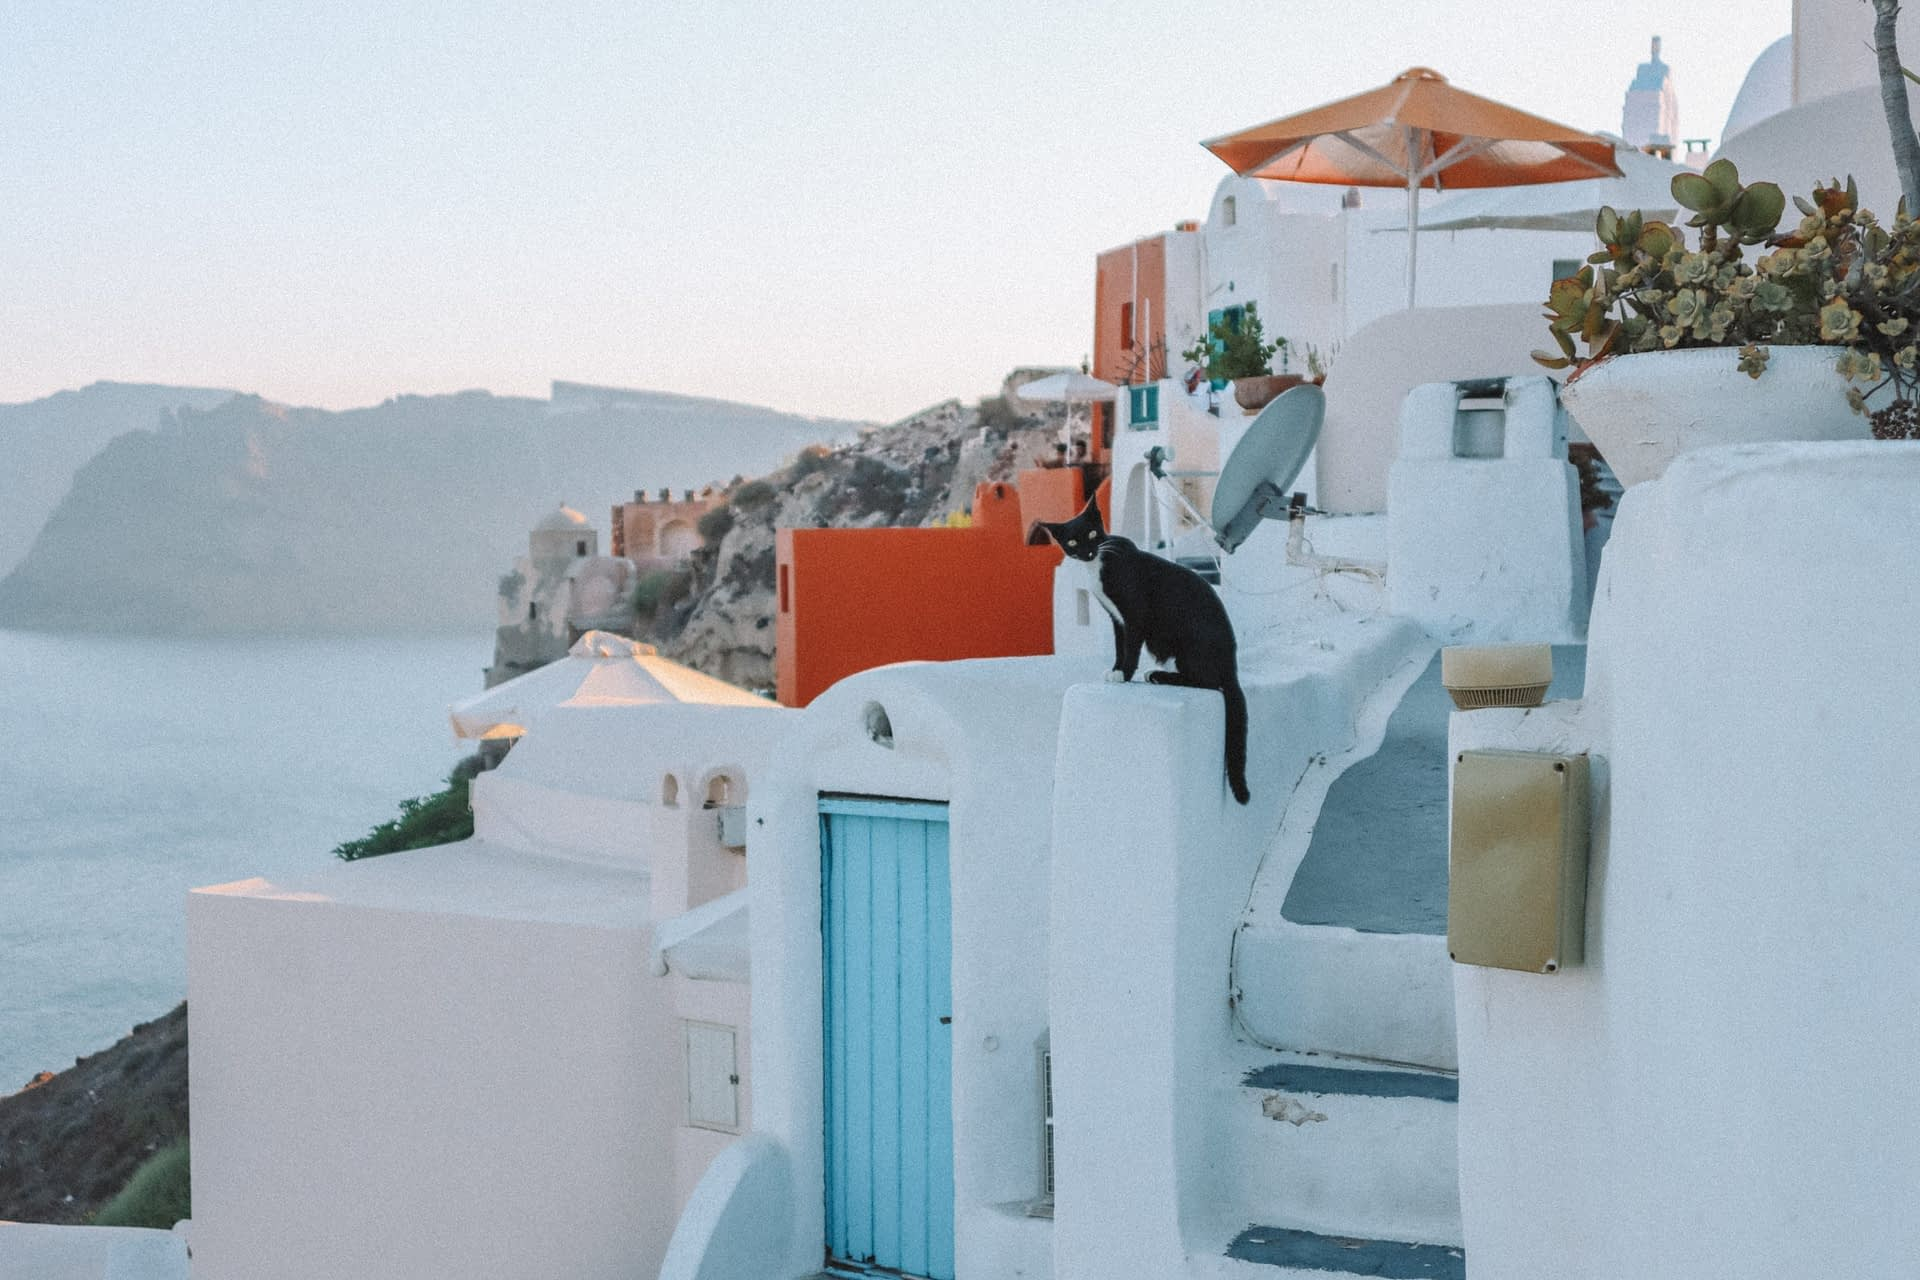 A cat sat on a whitewashed building in Oia, Santorini.